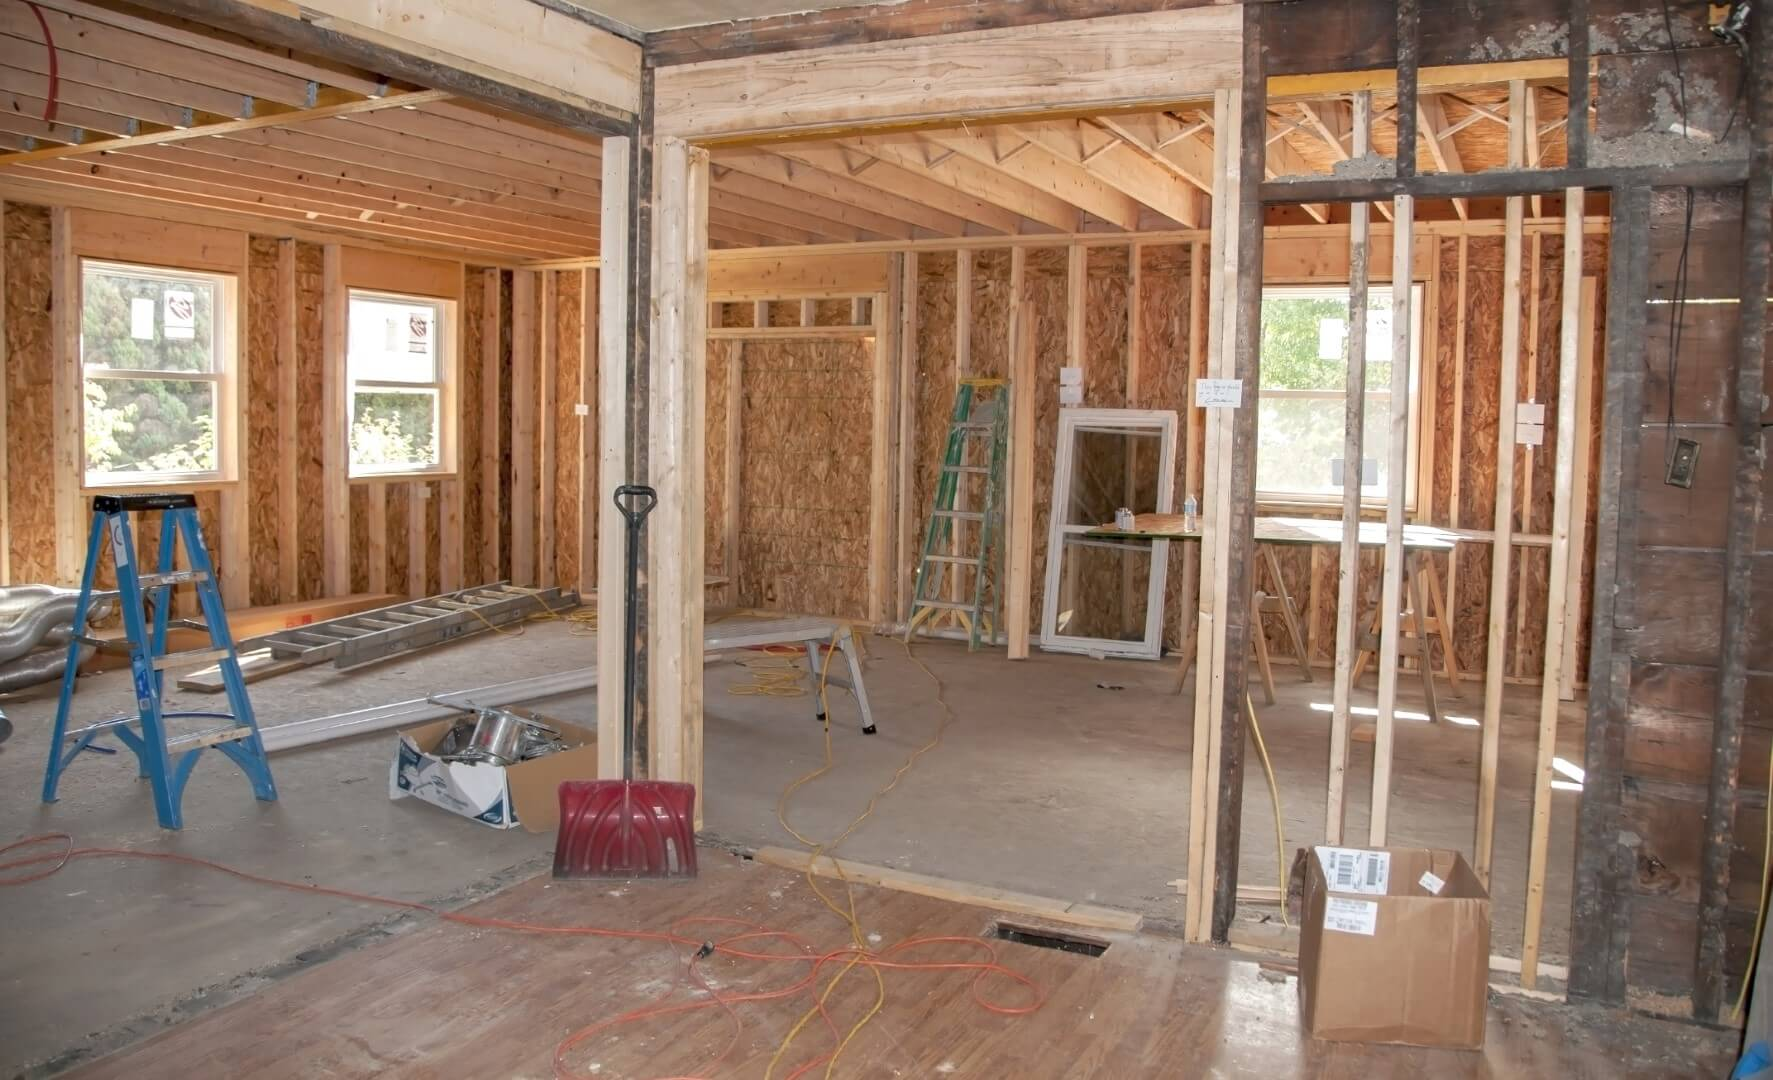 House Interior Under Construction